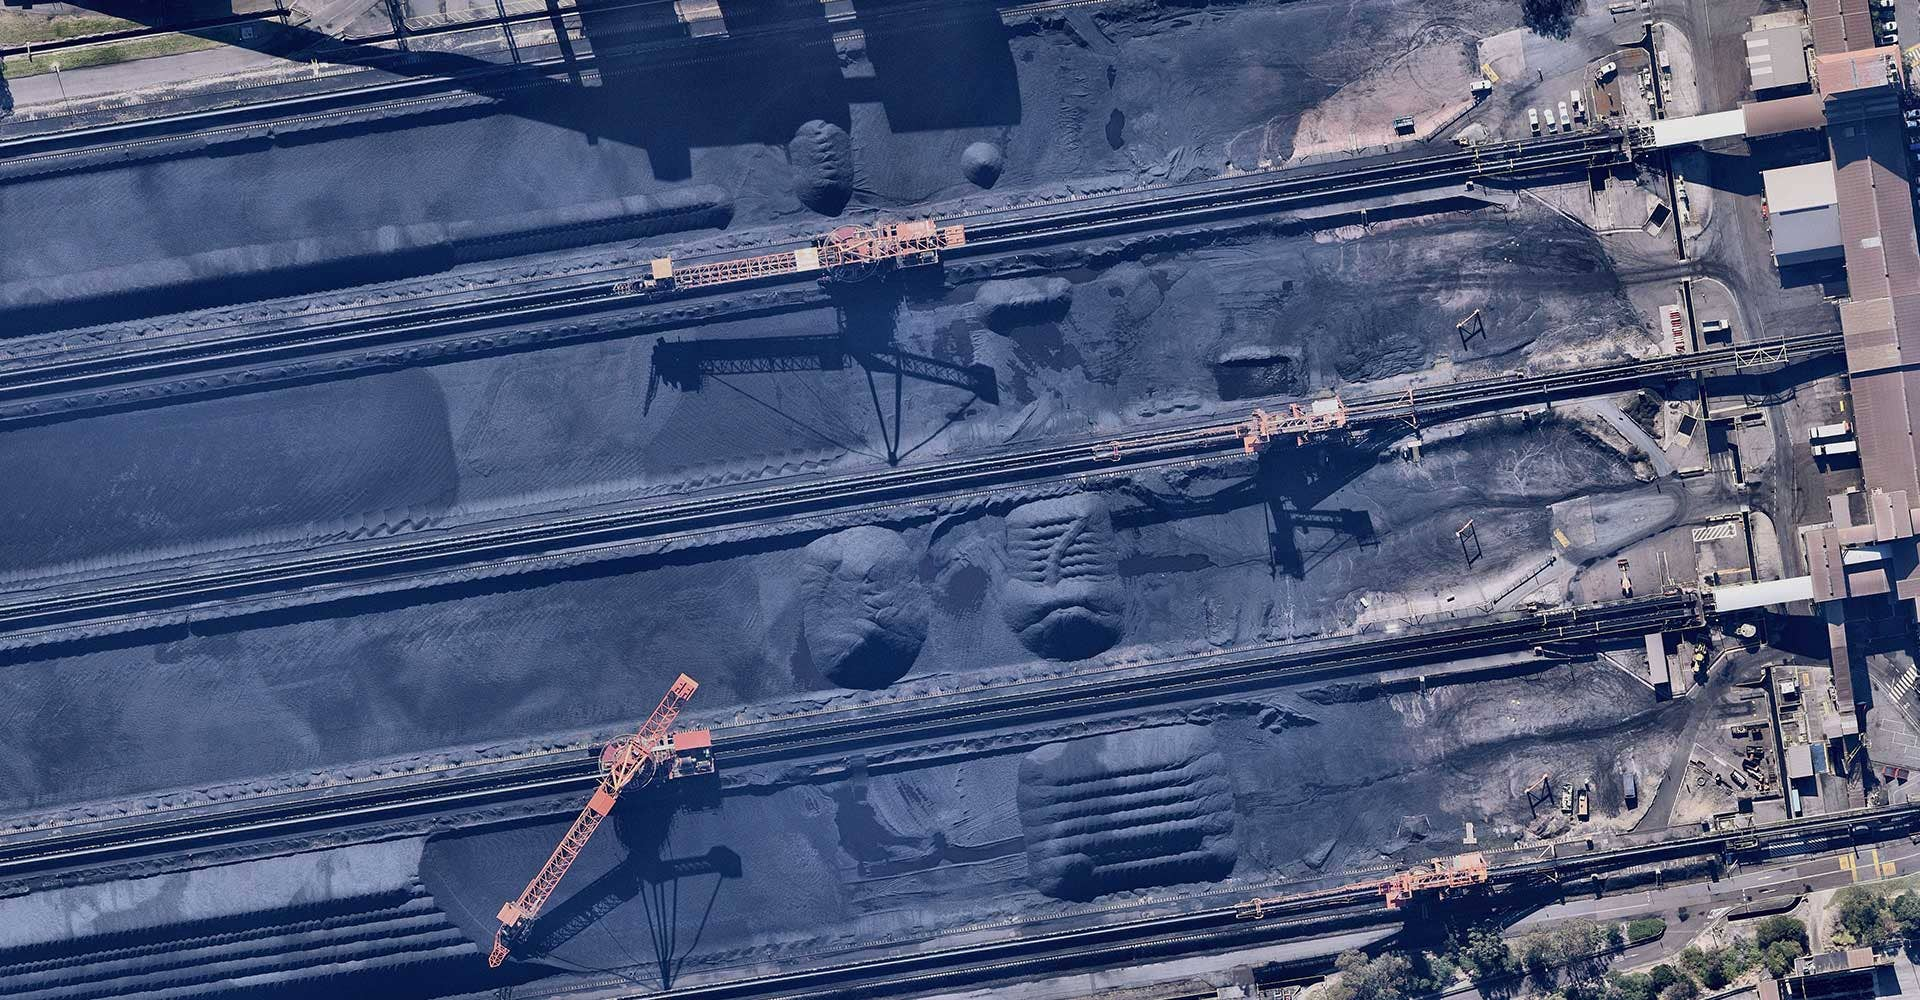 Utilities aerial coal industry Newcastle New South Wales